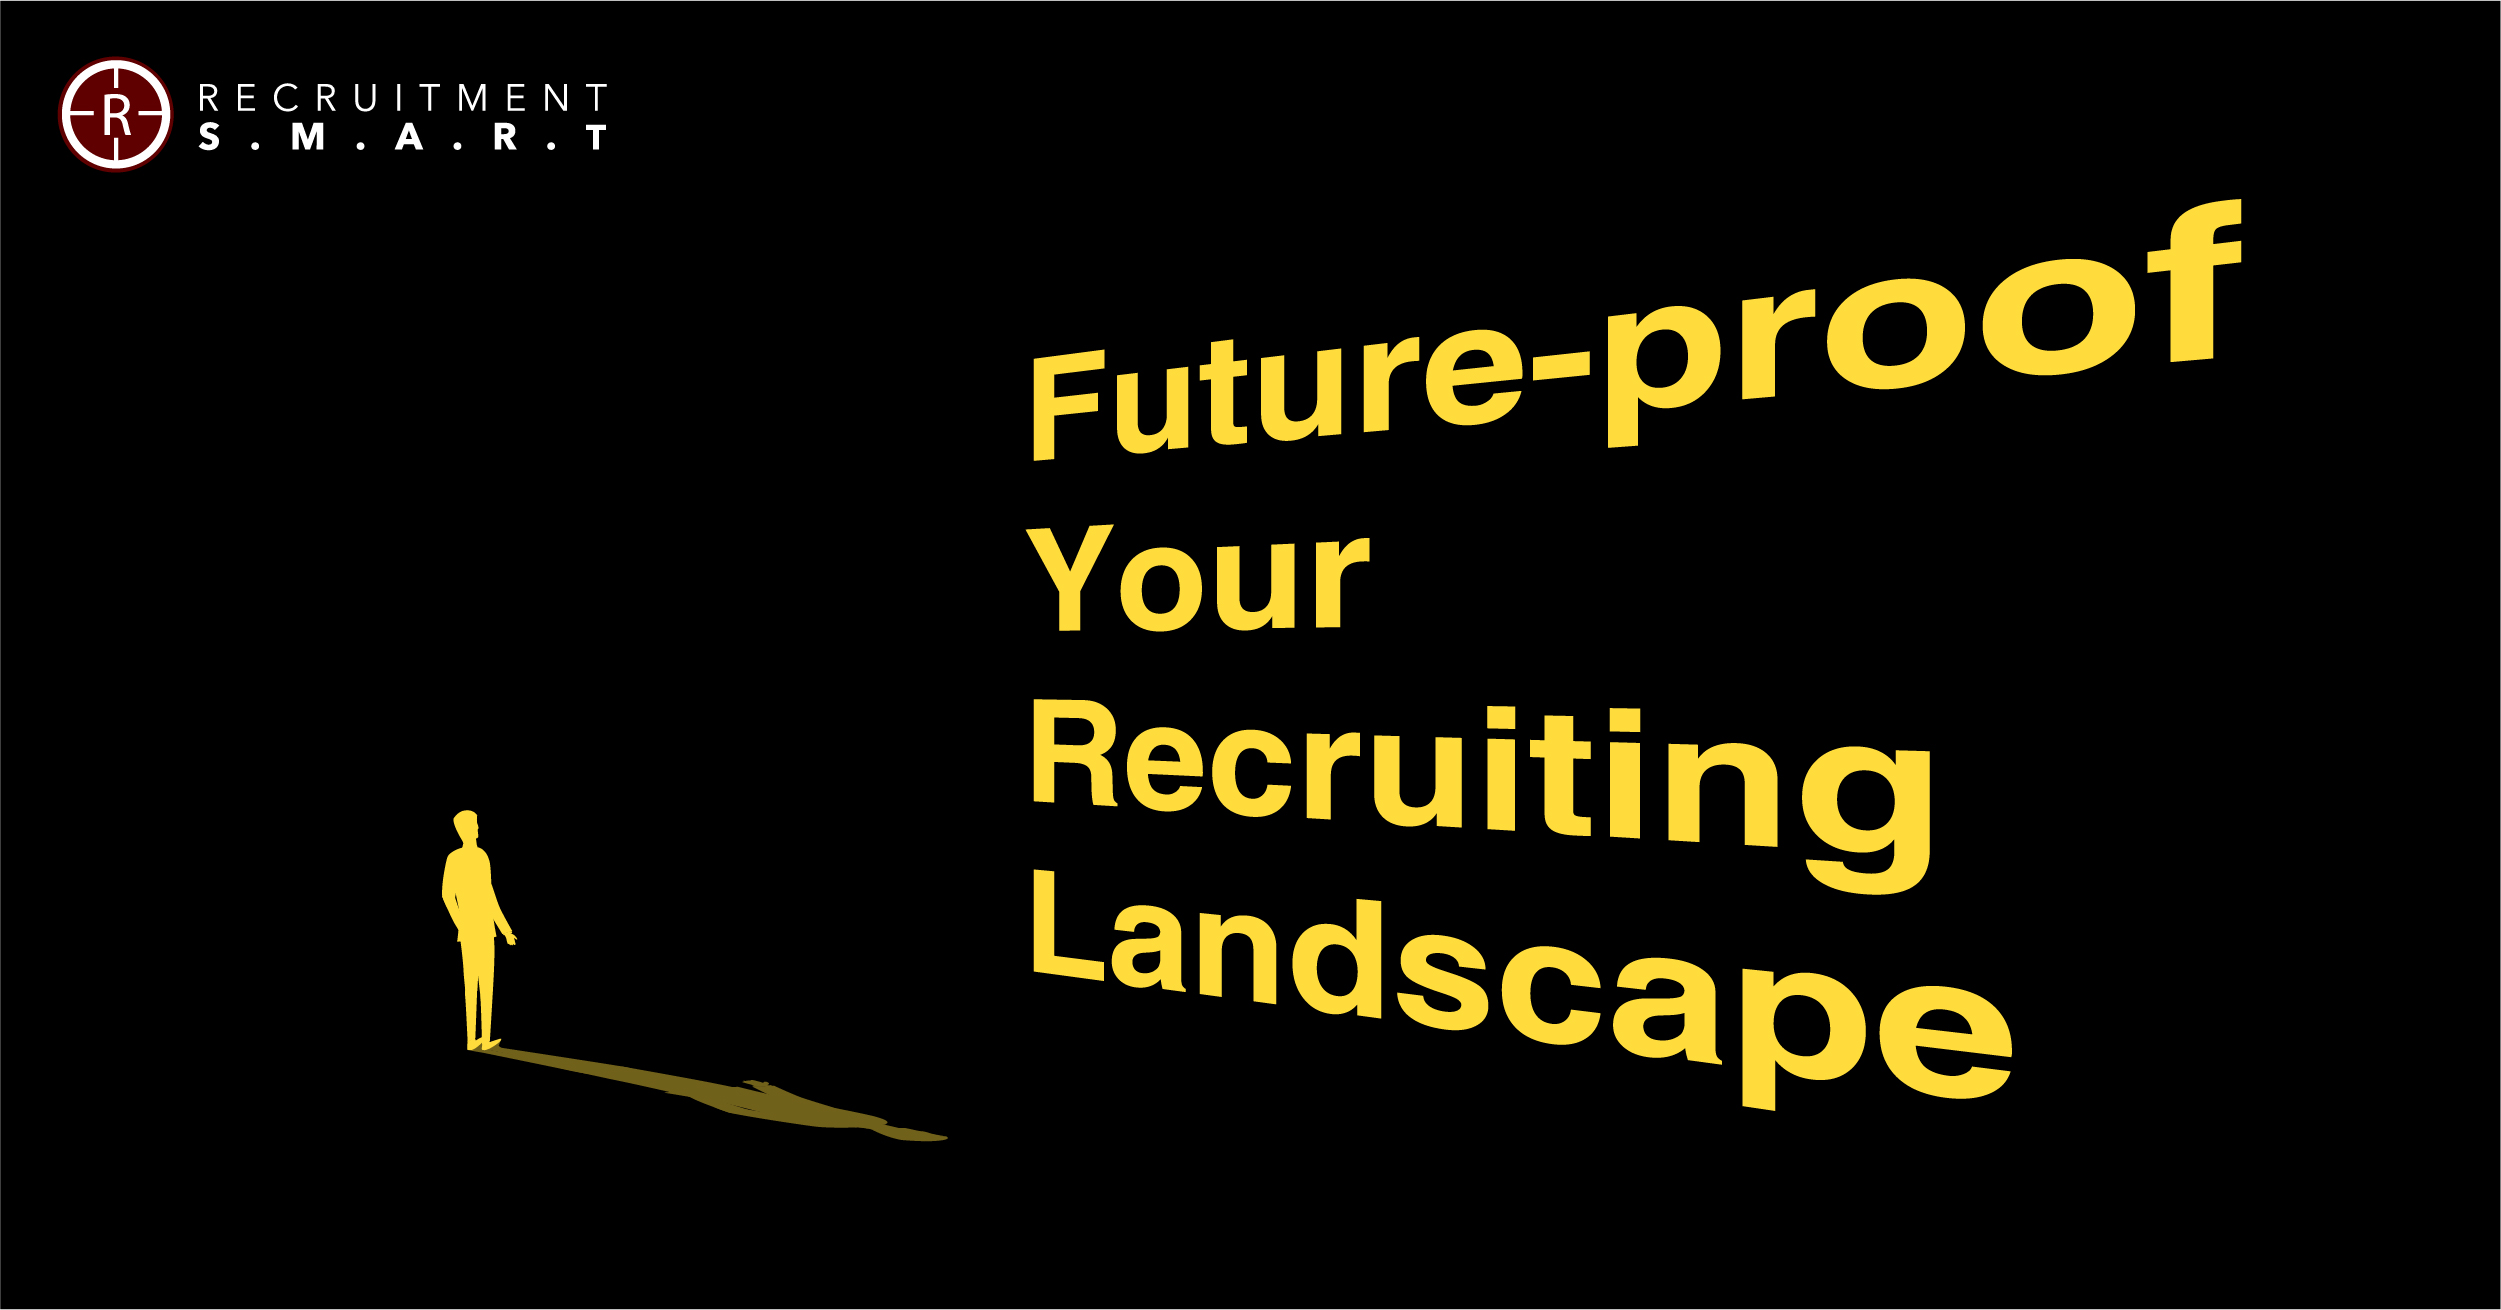 Top 5 Recruiting Trends in 2020